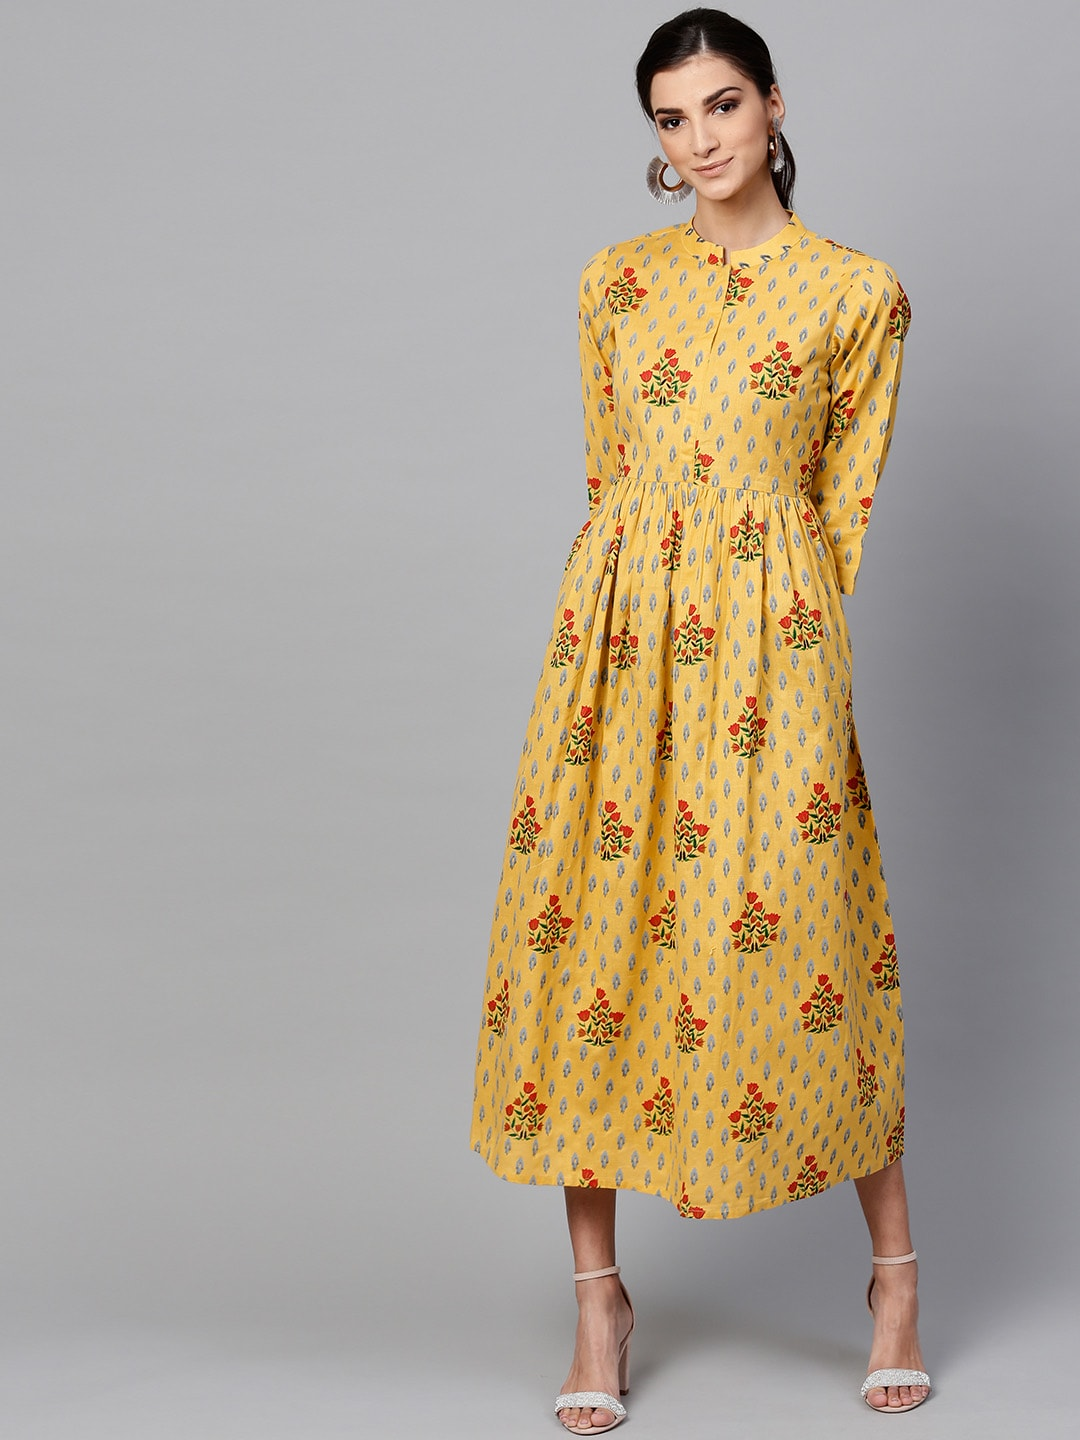 2269a8d773ed Yellow Dress For Women - Buy Yellow Dress For Women online in India